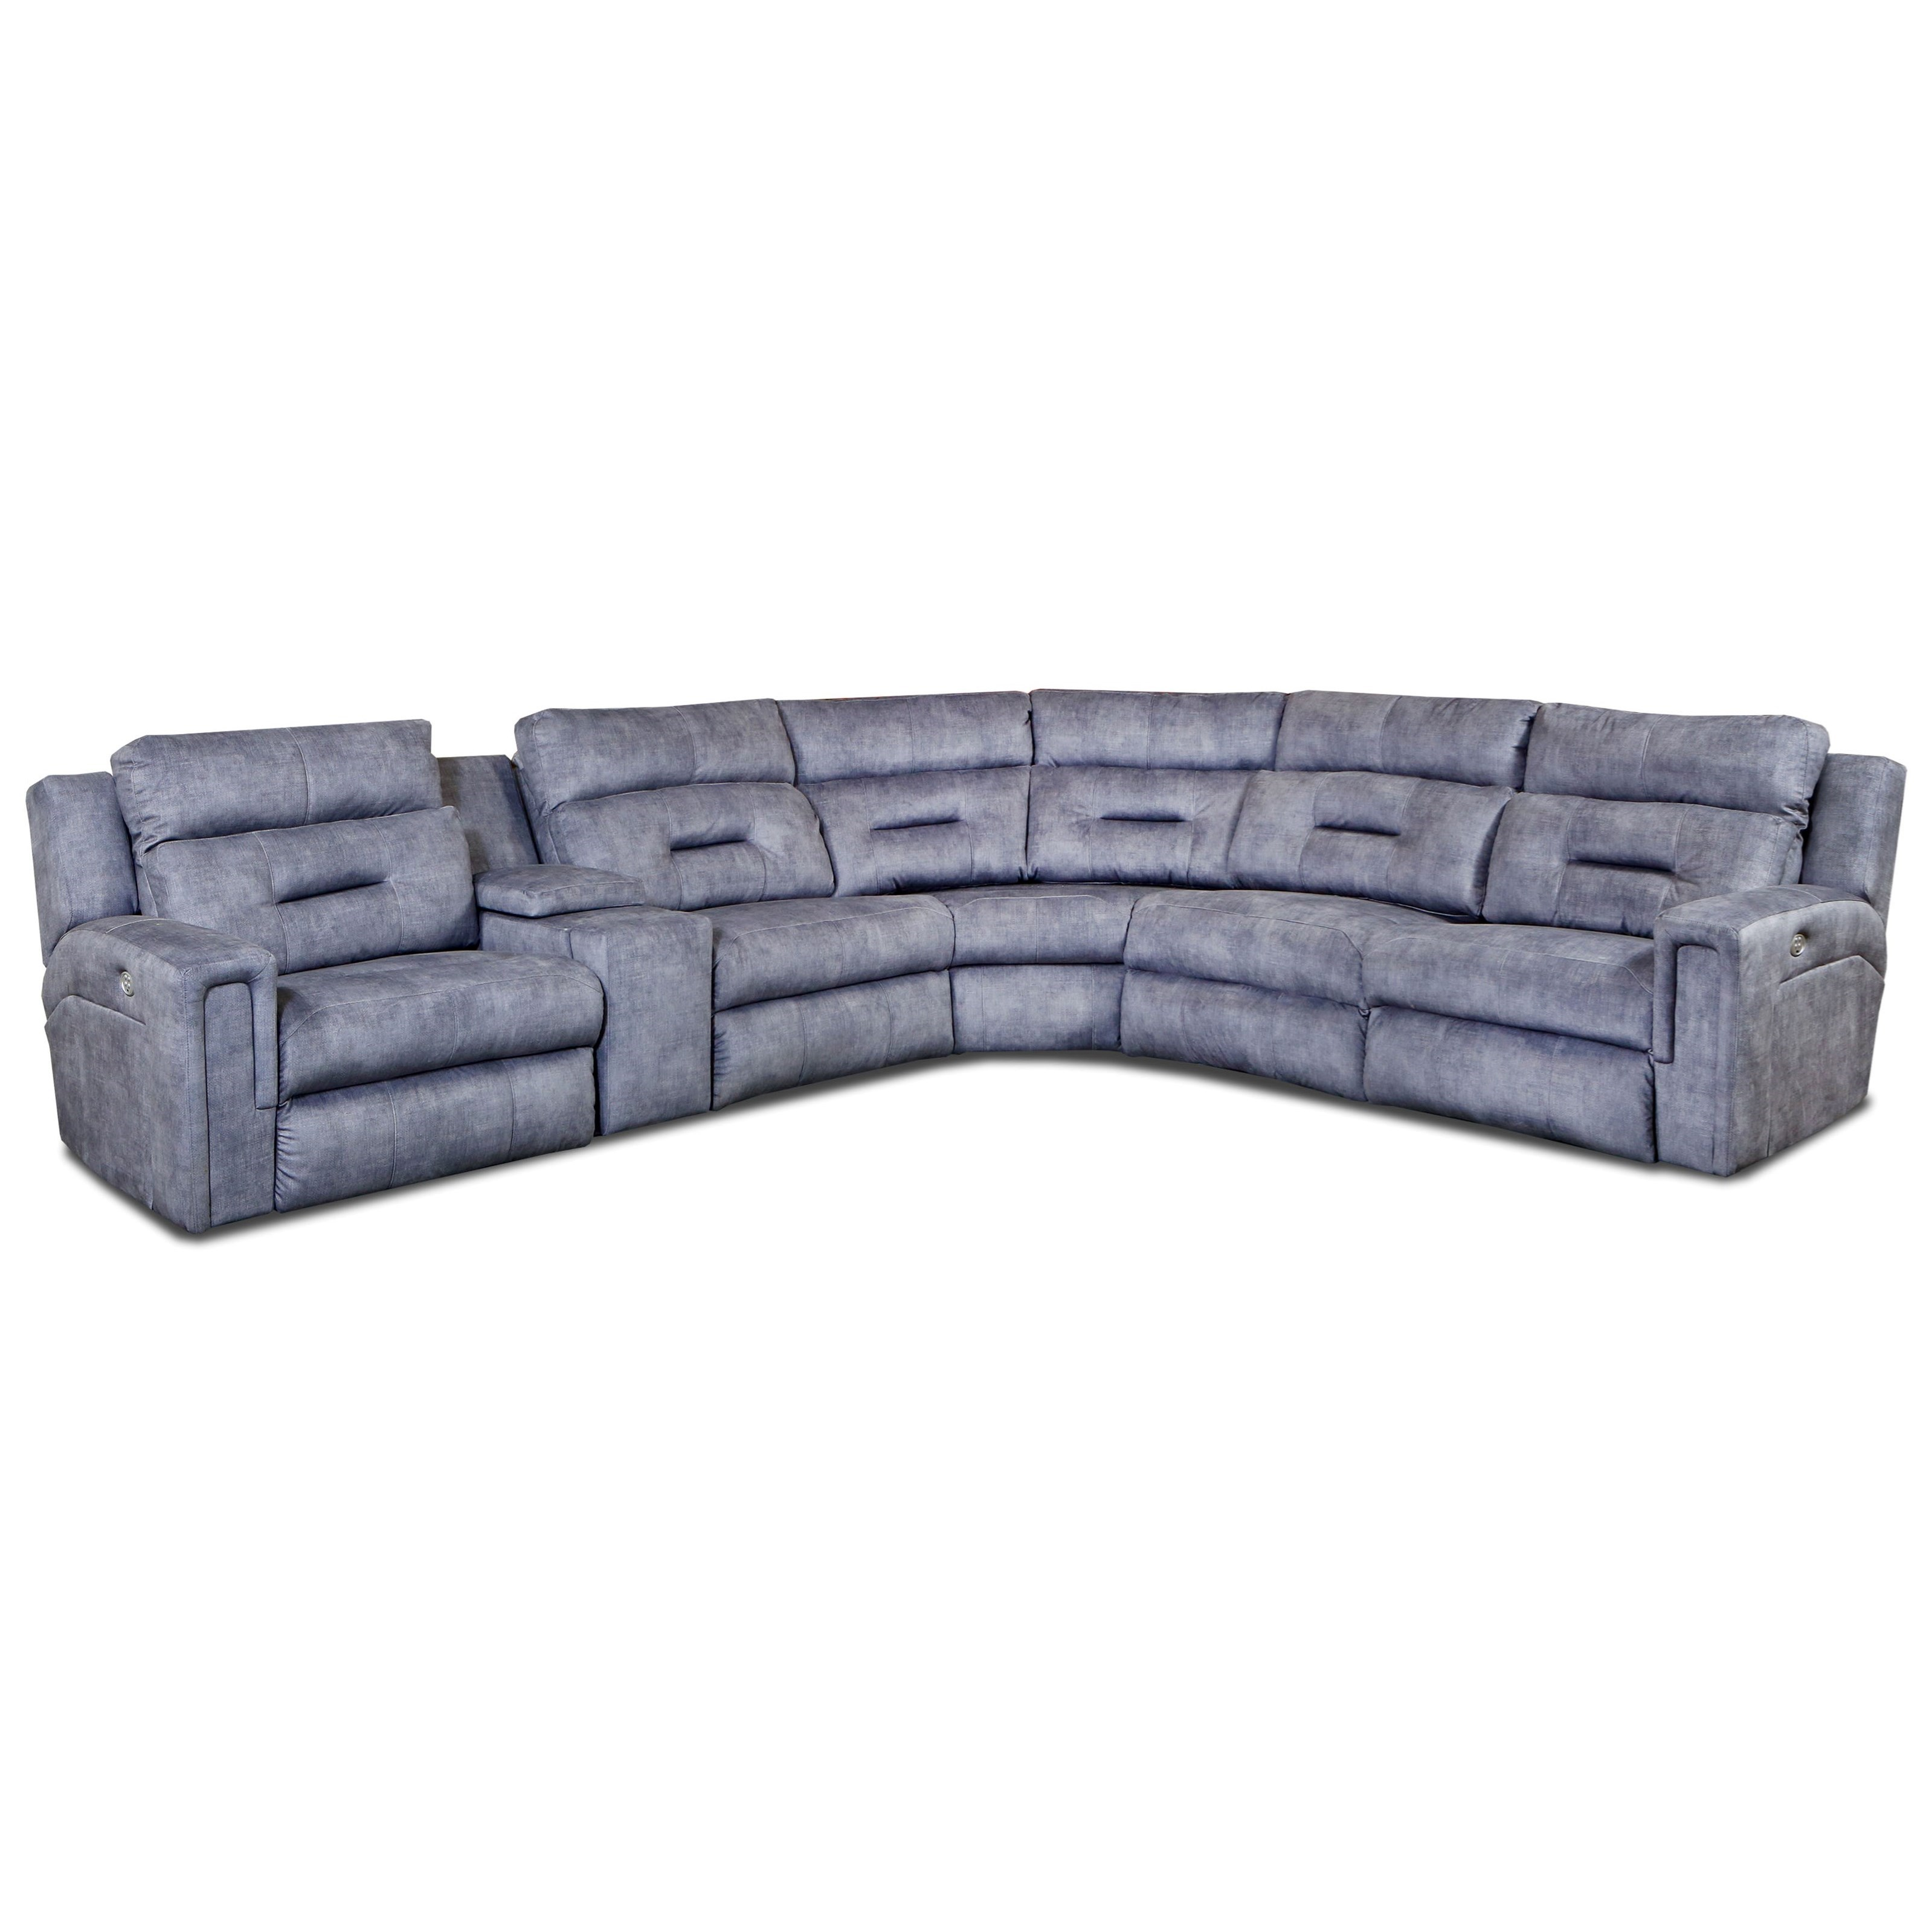 Excel Pwr Headrest Reclining Sectional by Southern Motion at Prime Brothers Furniture